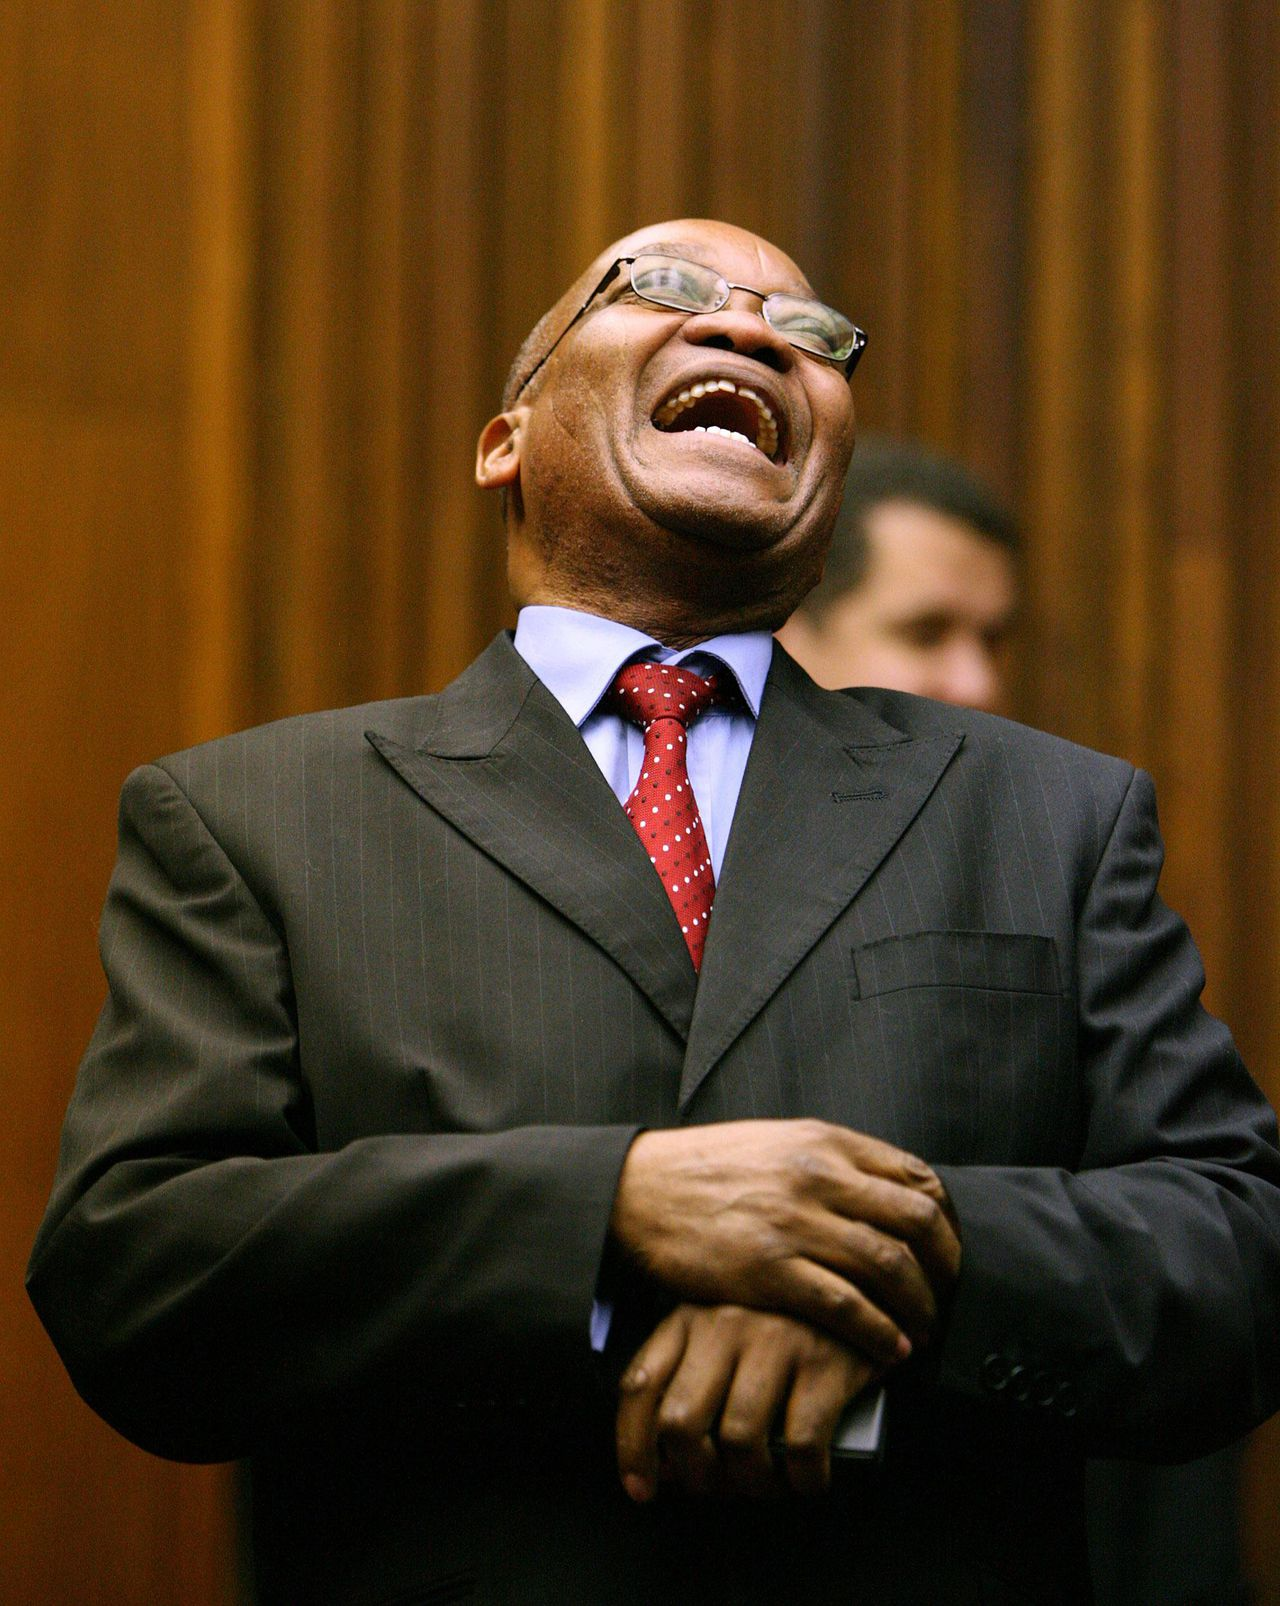 Jacob Zuma. Foto Reuters Former South African deputy-President Jacob Zuma reacts as he stands in the dock during the judgement in his trial for rape in the Johannesburg High Court May 8, 2006. A South African judge on Monday acquitted Zuma of raping an HIV-positive family friend, ending a case that opened deep rifts in the ruling African National Congress. REUTERS/John Hrusa/Pool